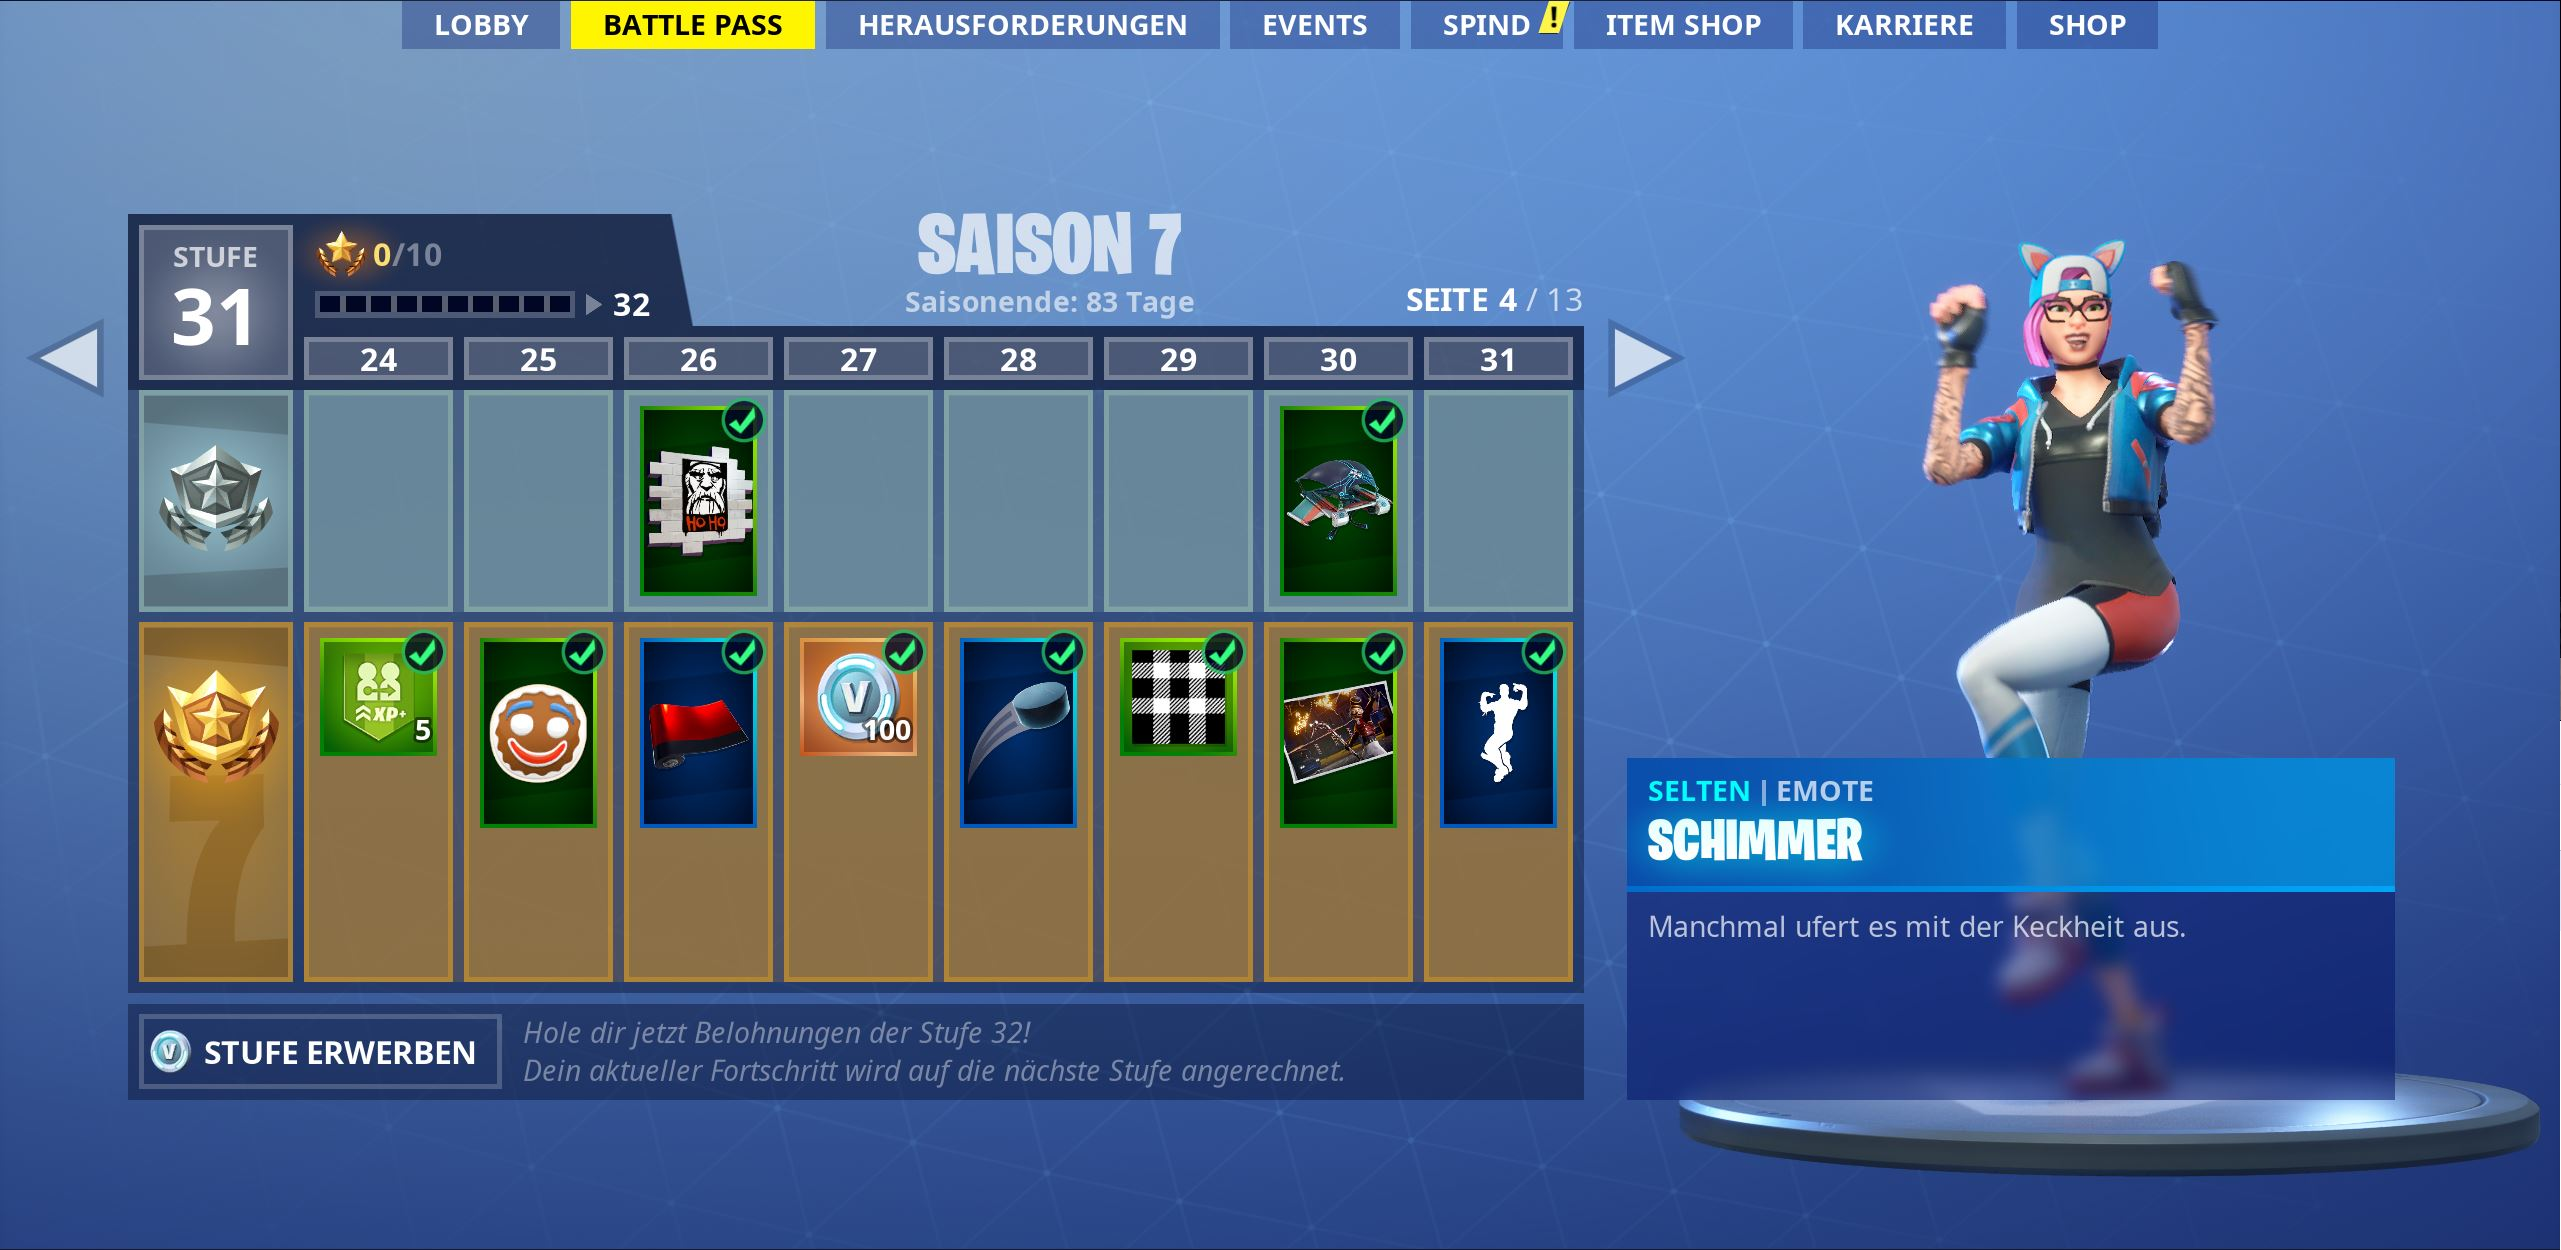 battle pass alle skins und belohnungen der season 7 in fortnite - fortnite season 3 battle pass herausforderung